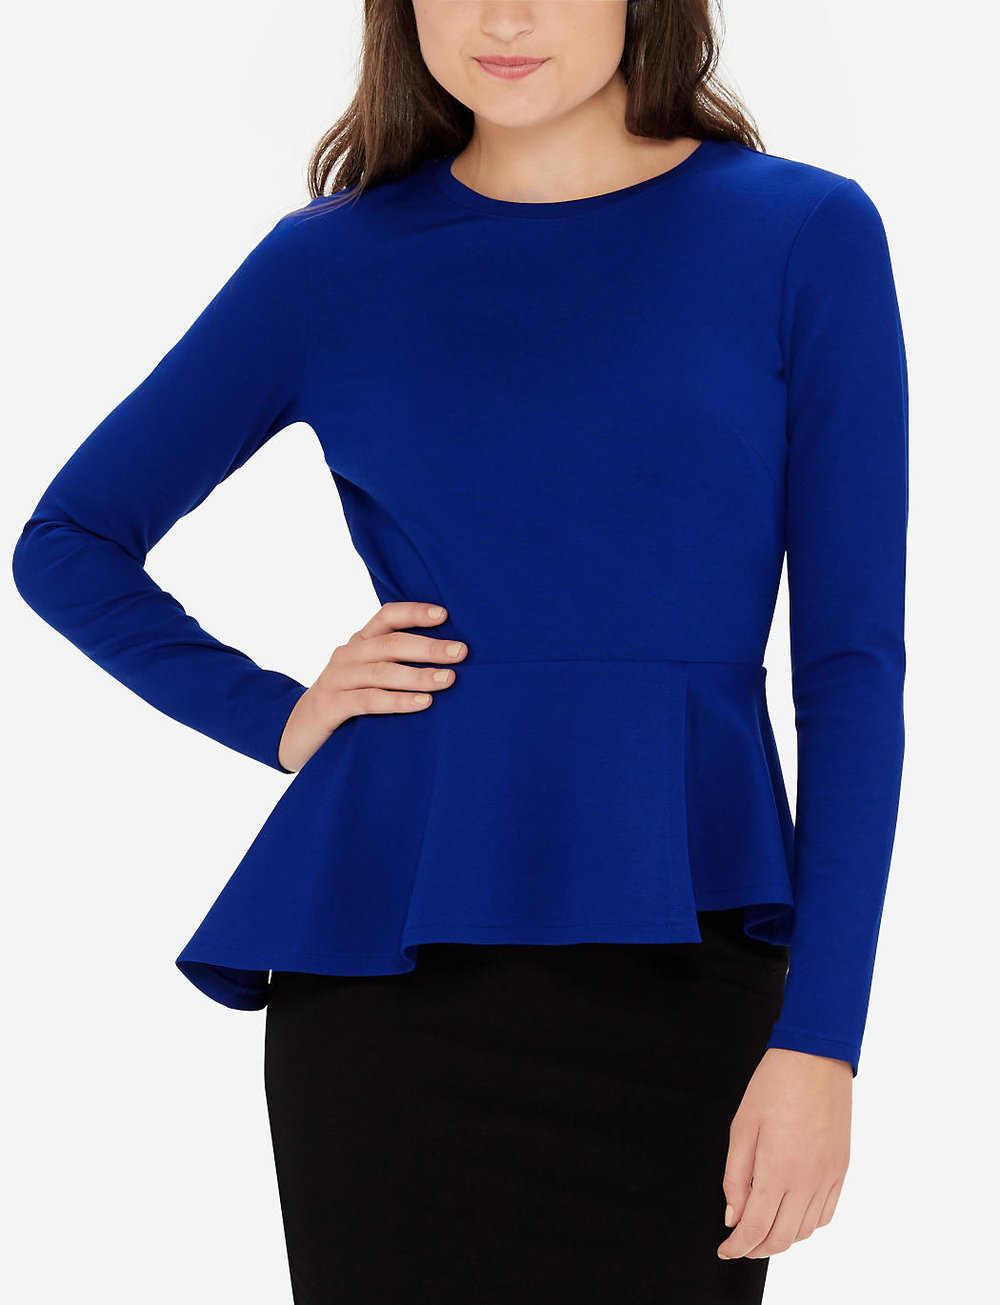 Eva Longoria Power Ponte Peplum Top. The Limited. Was: $99. Now: $79 plus an additional 50% off.